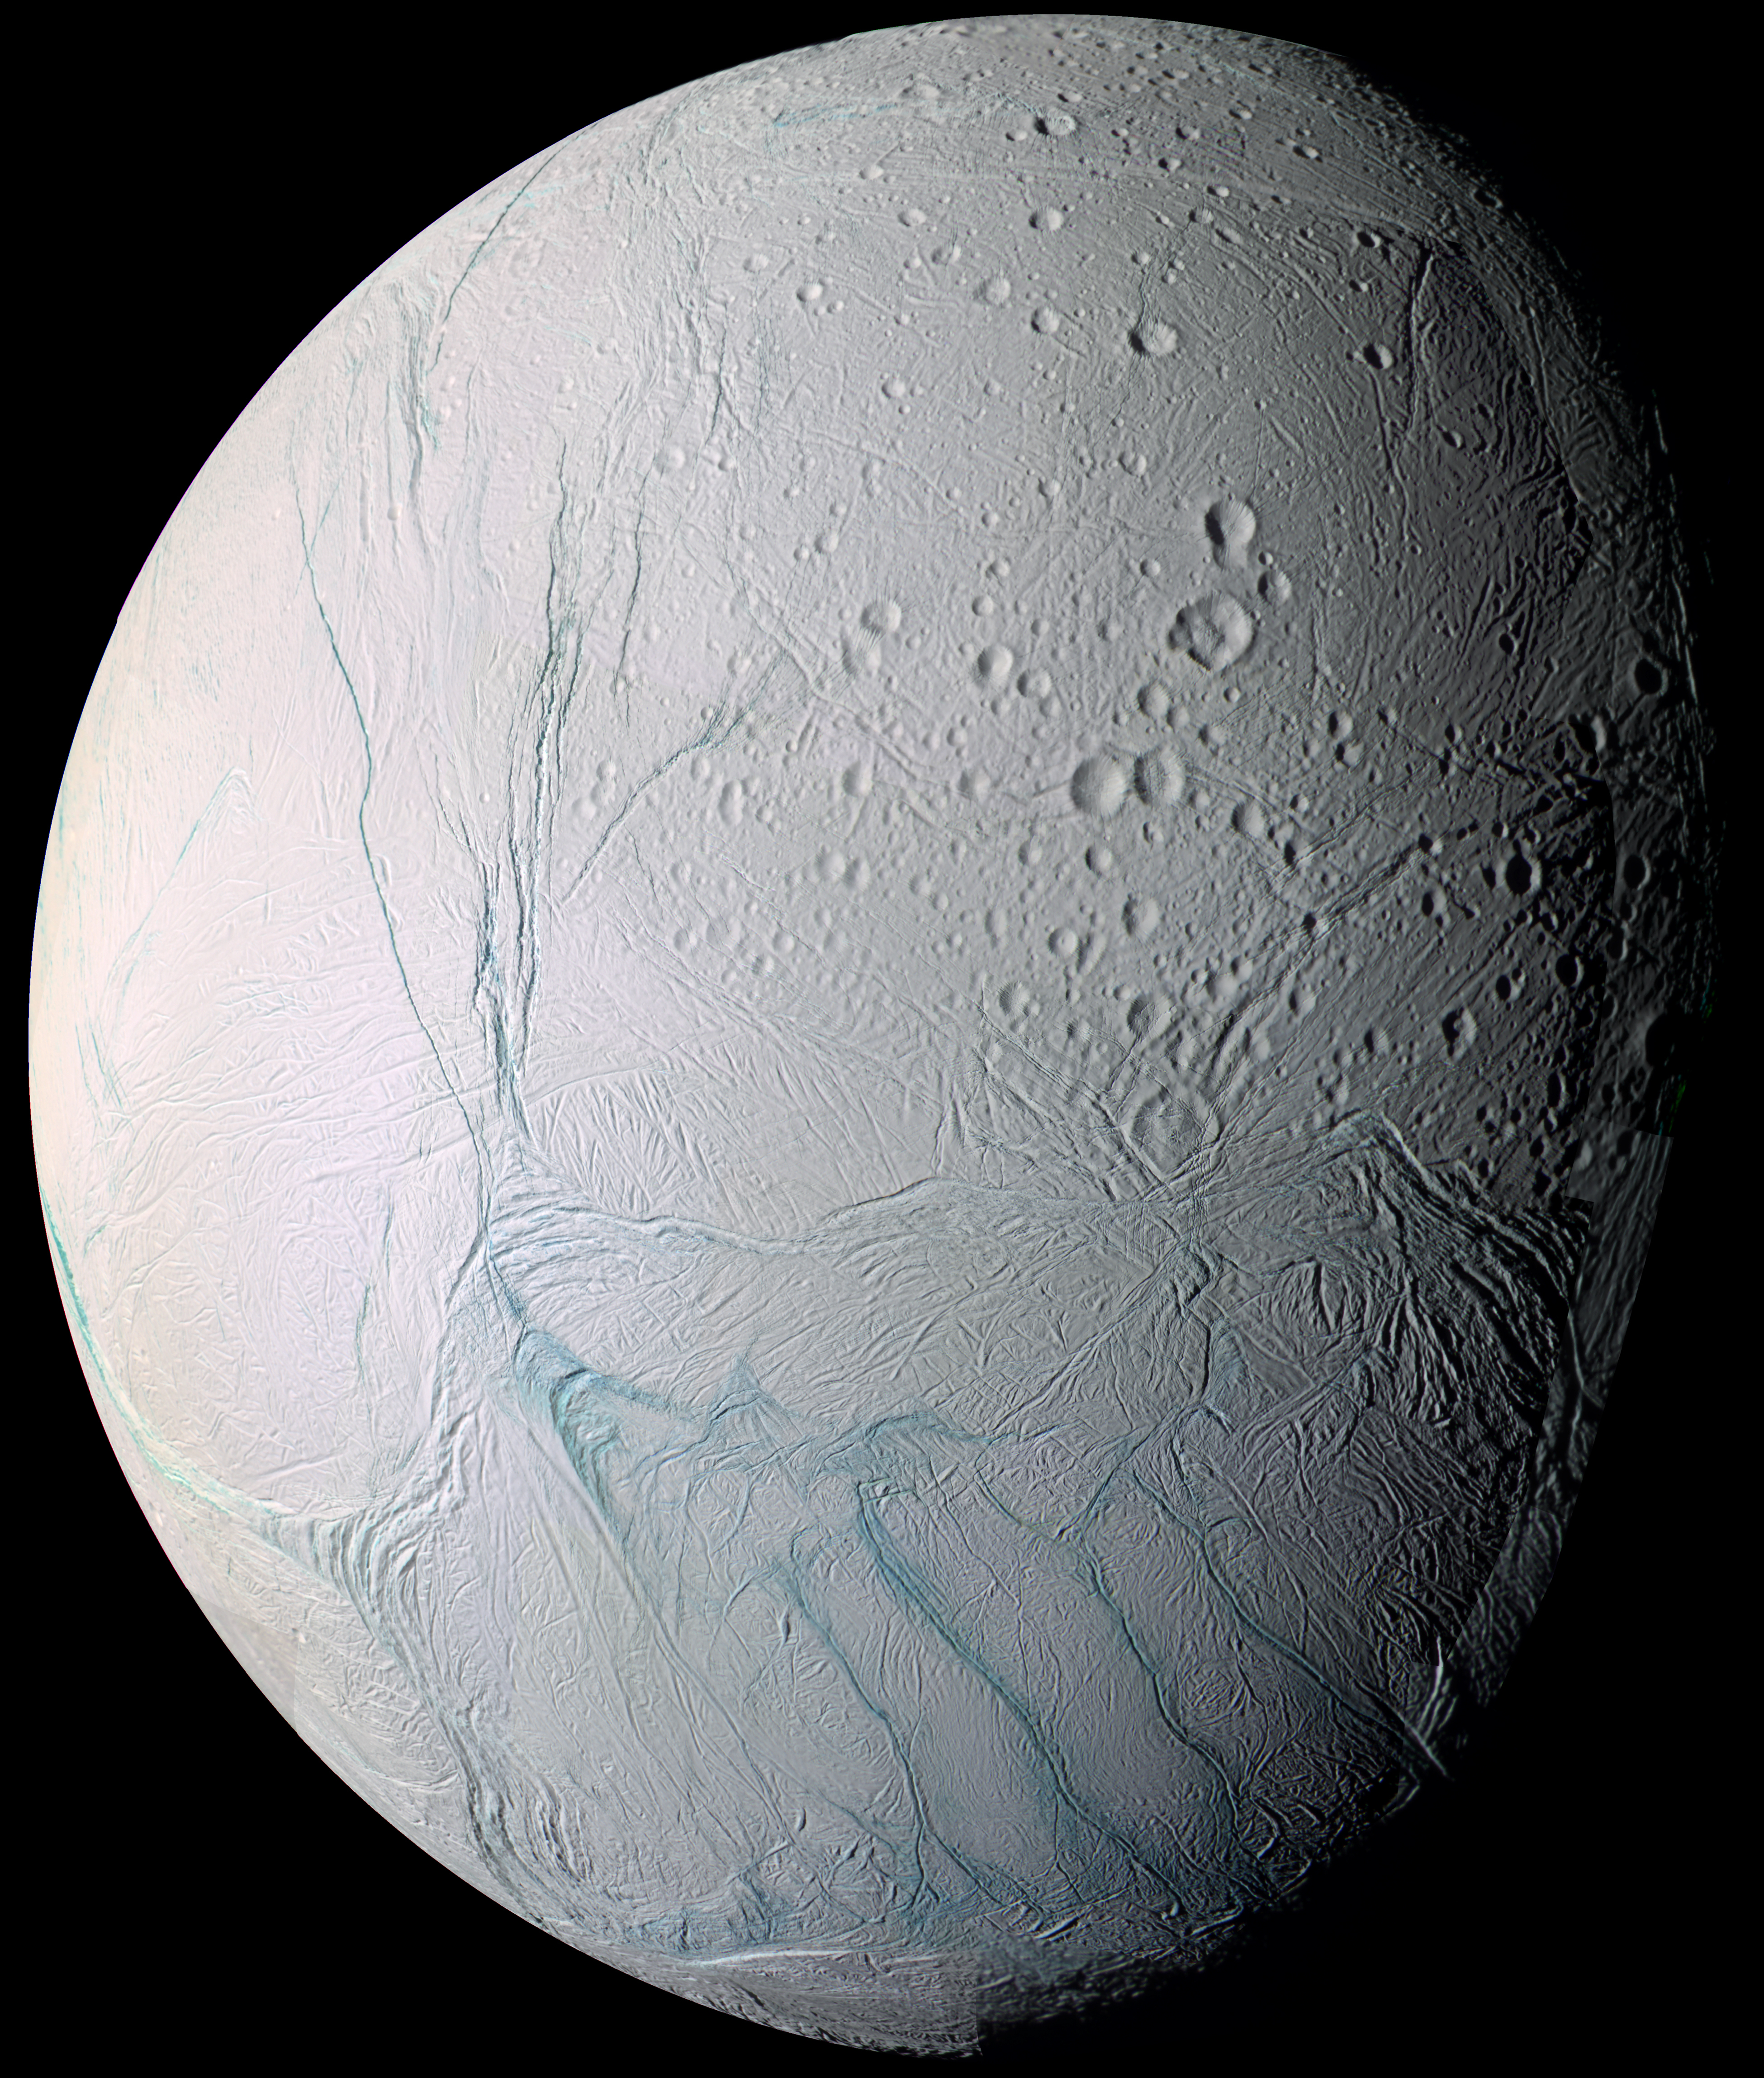 Saturn's moon Enceladus, photographed by the Cassini spacecraft.